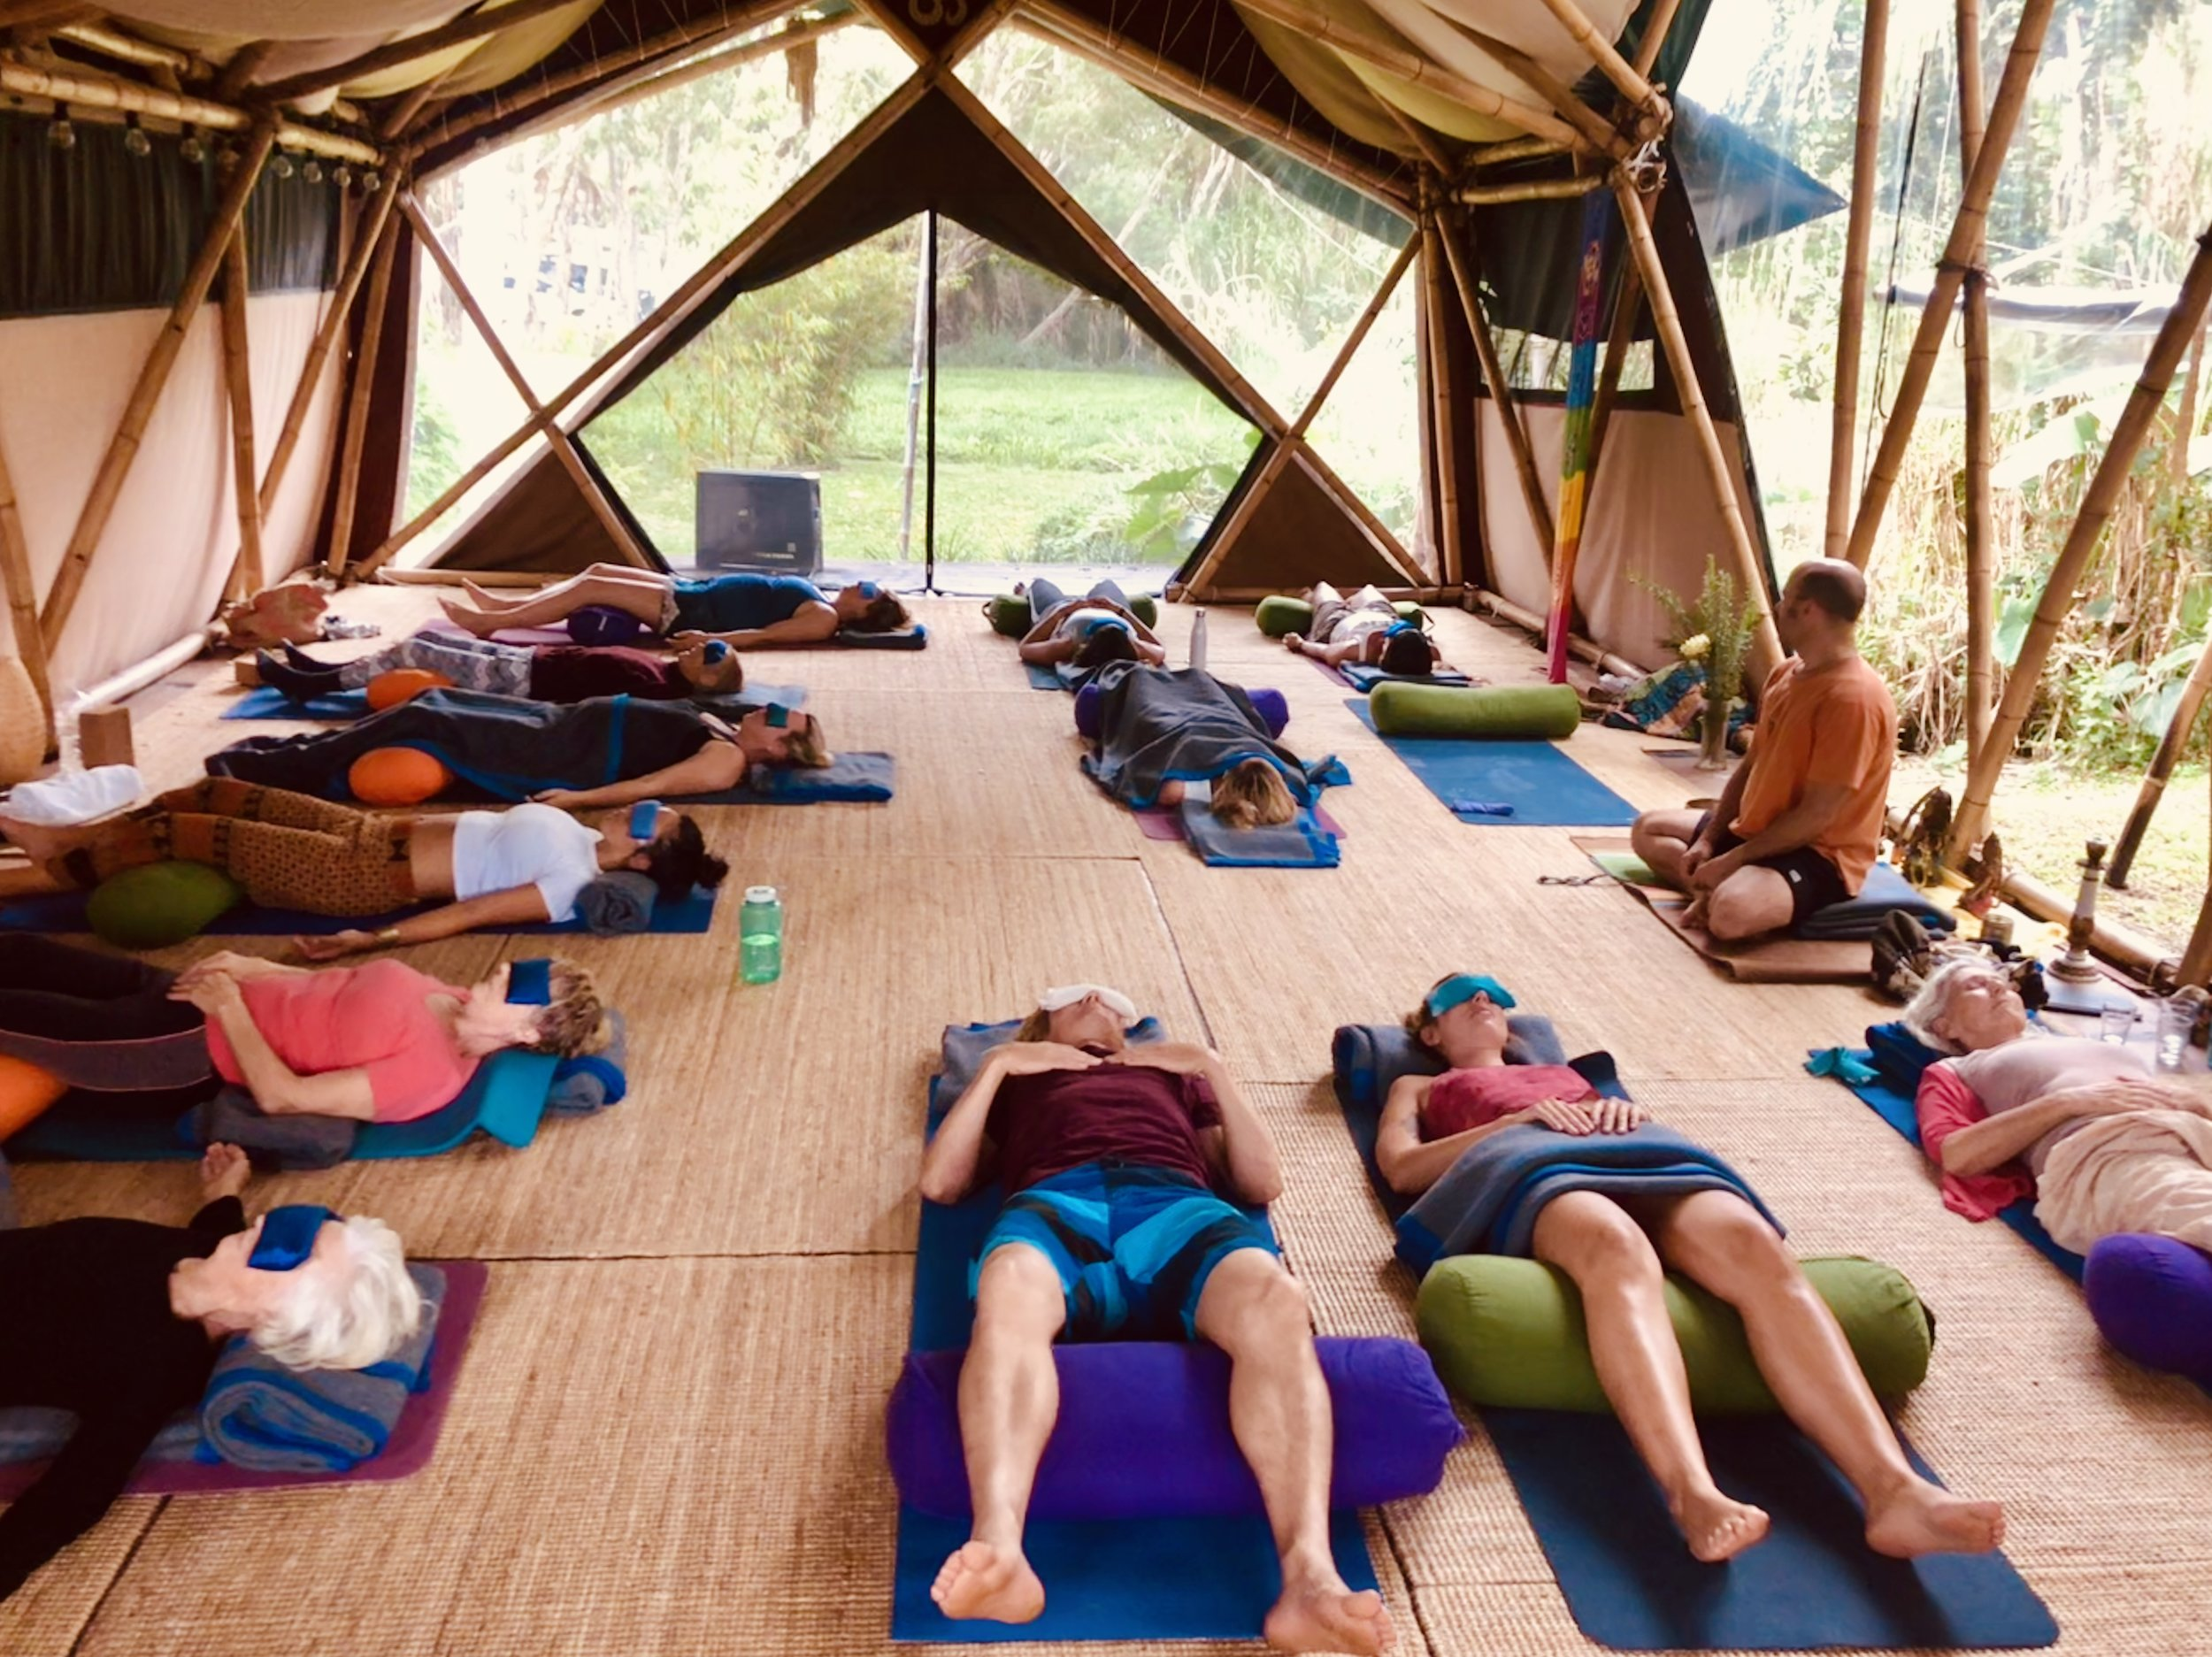 Grow your Garden! - Community Yoga Nidra Free Class every Wednesday at 1pm at Bamboo Yoga Byron Bay!